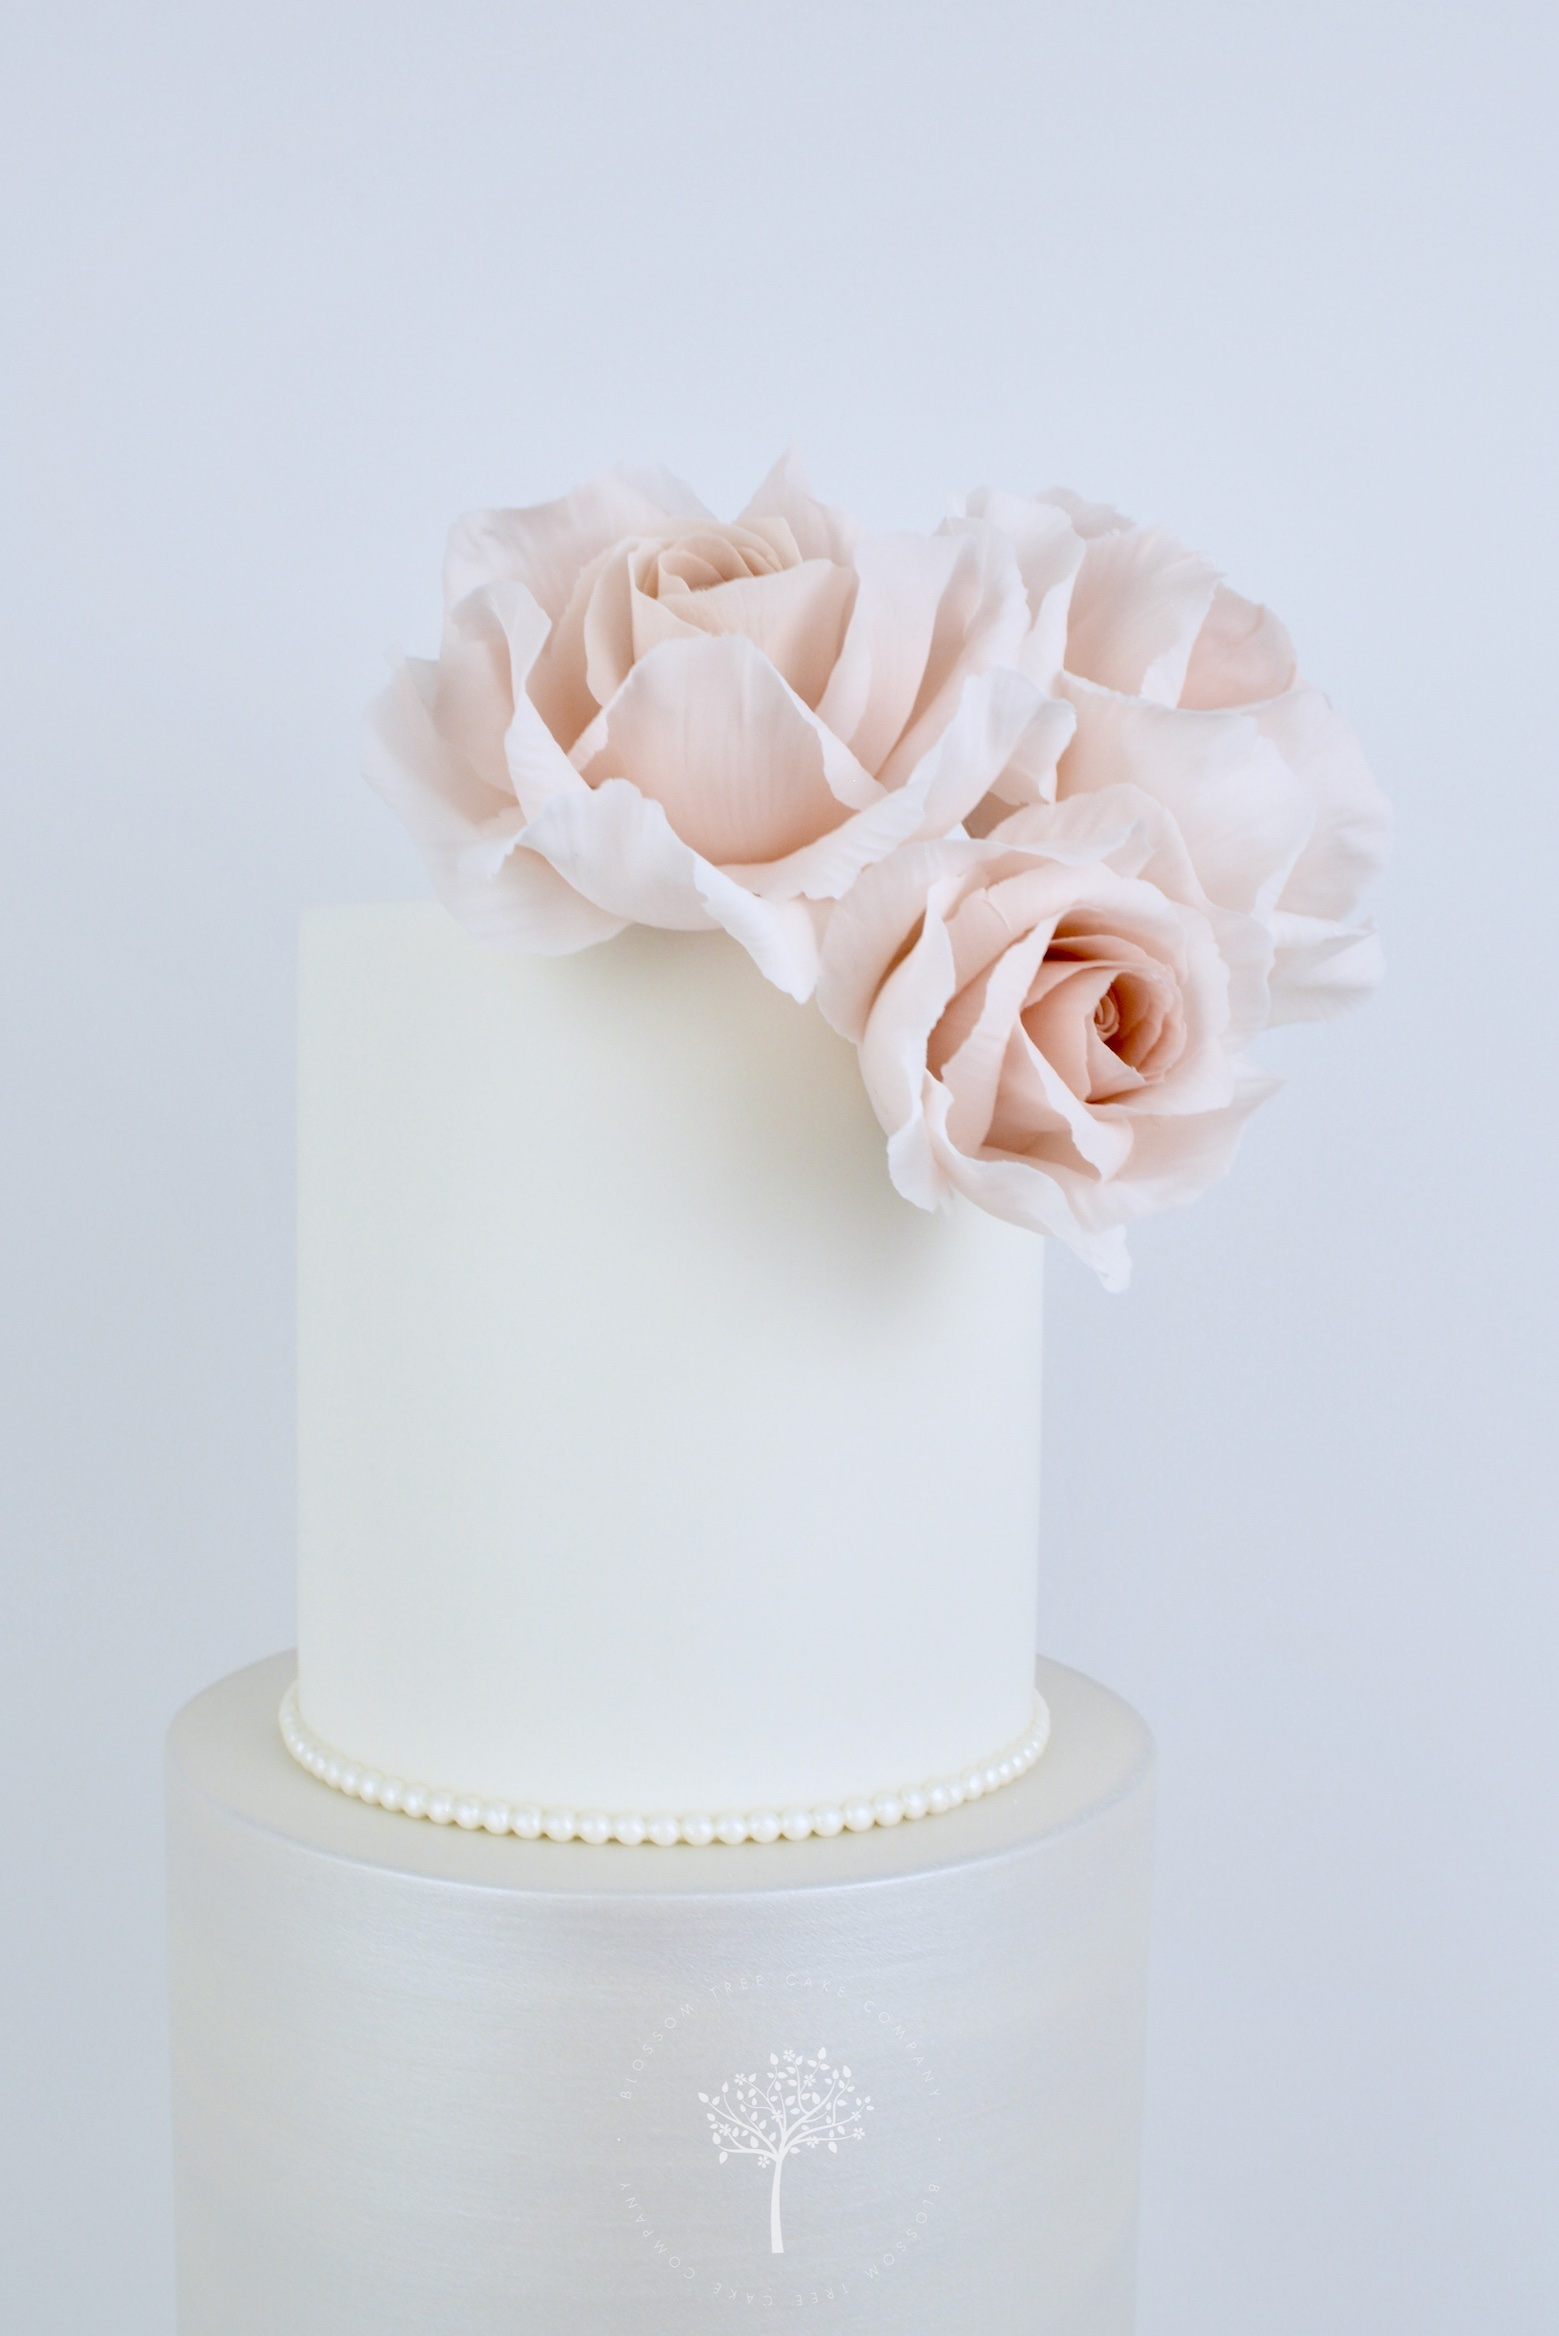 Pearlescent and Blush Petal Shells wedding cake by Blossom Tree Cake Company Harrogate North Yorkshire - sugar roses.jpg